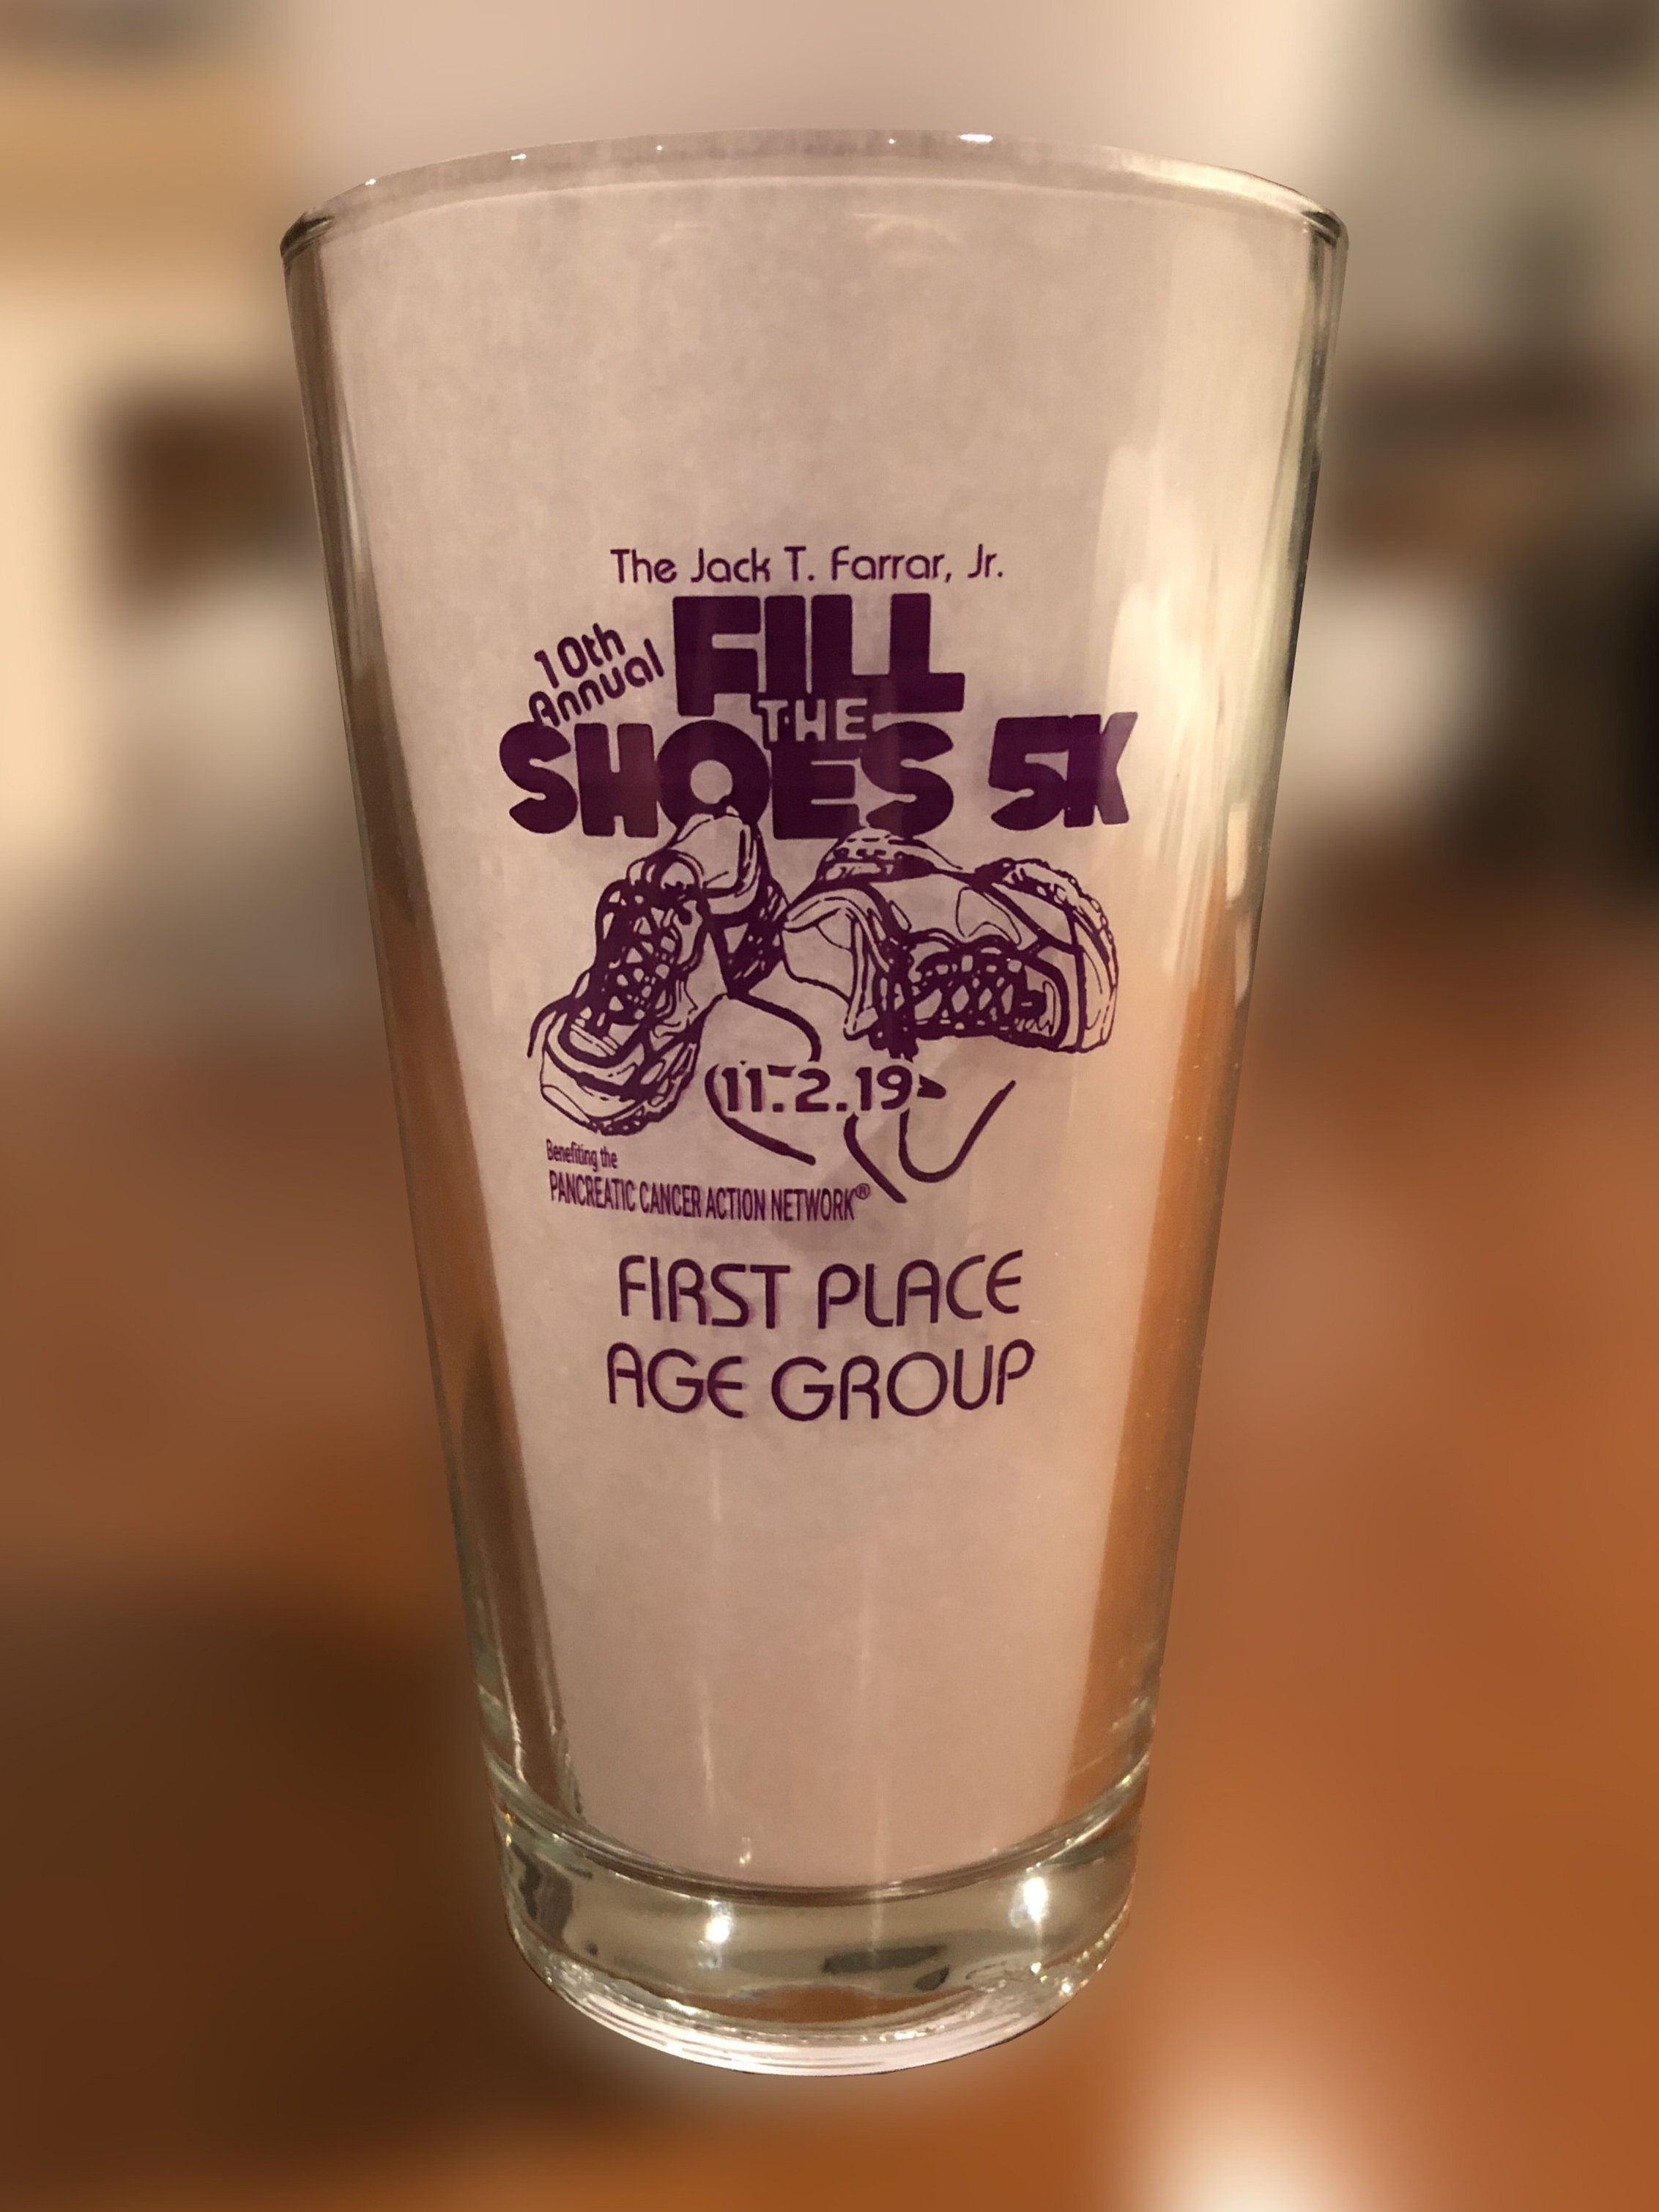 The pint glass awards go to top 3 male and female finishers in 5-year age groups.